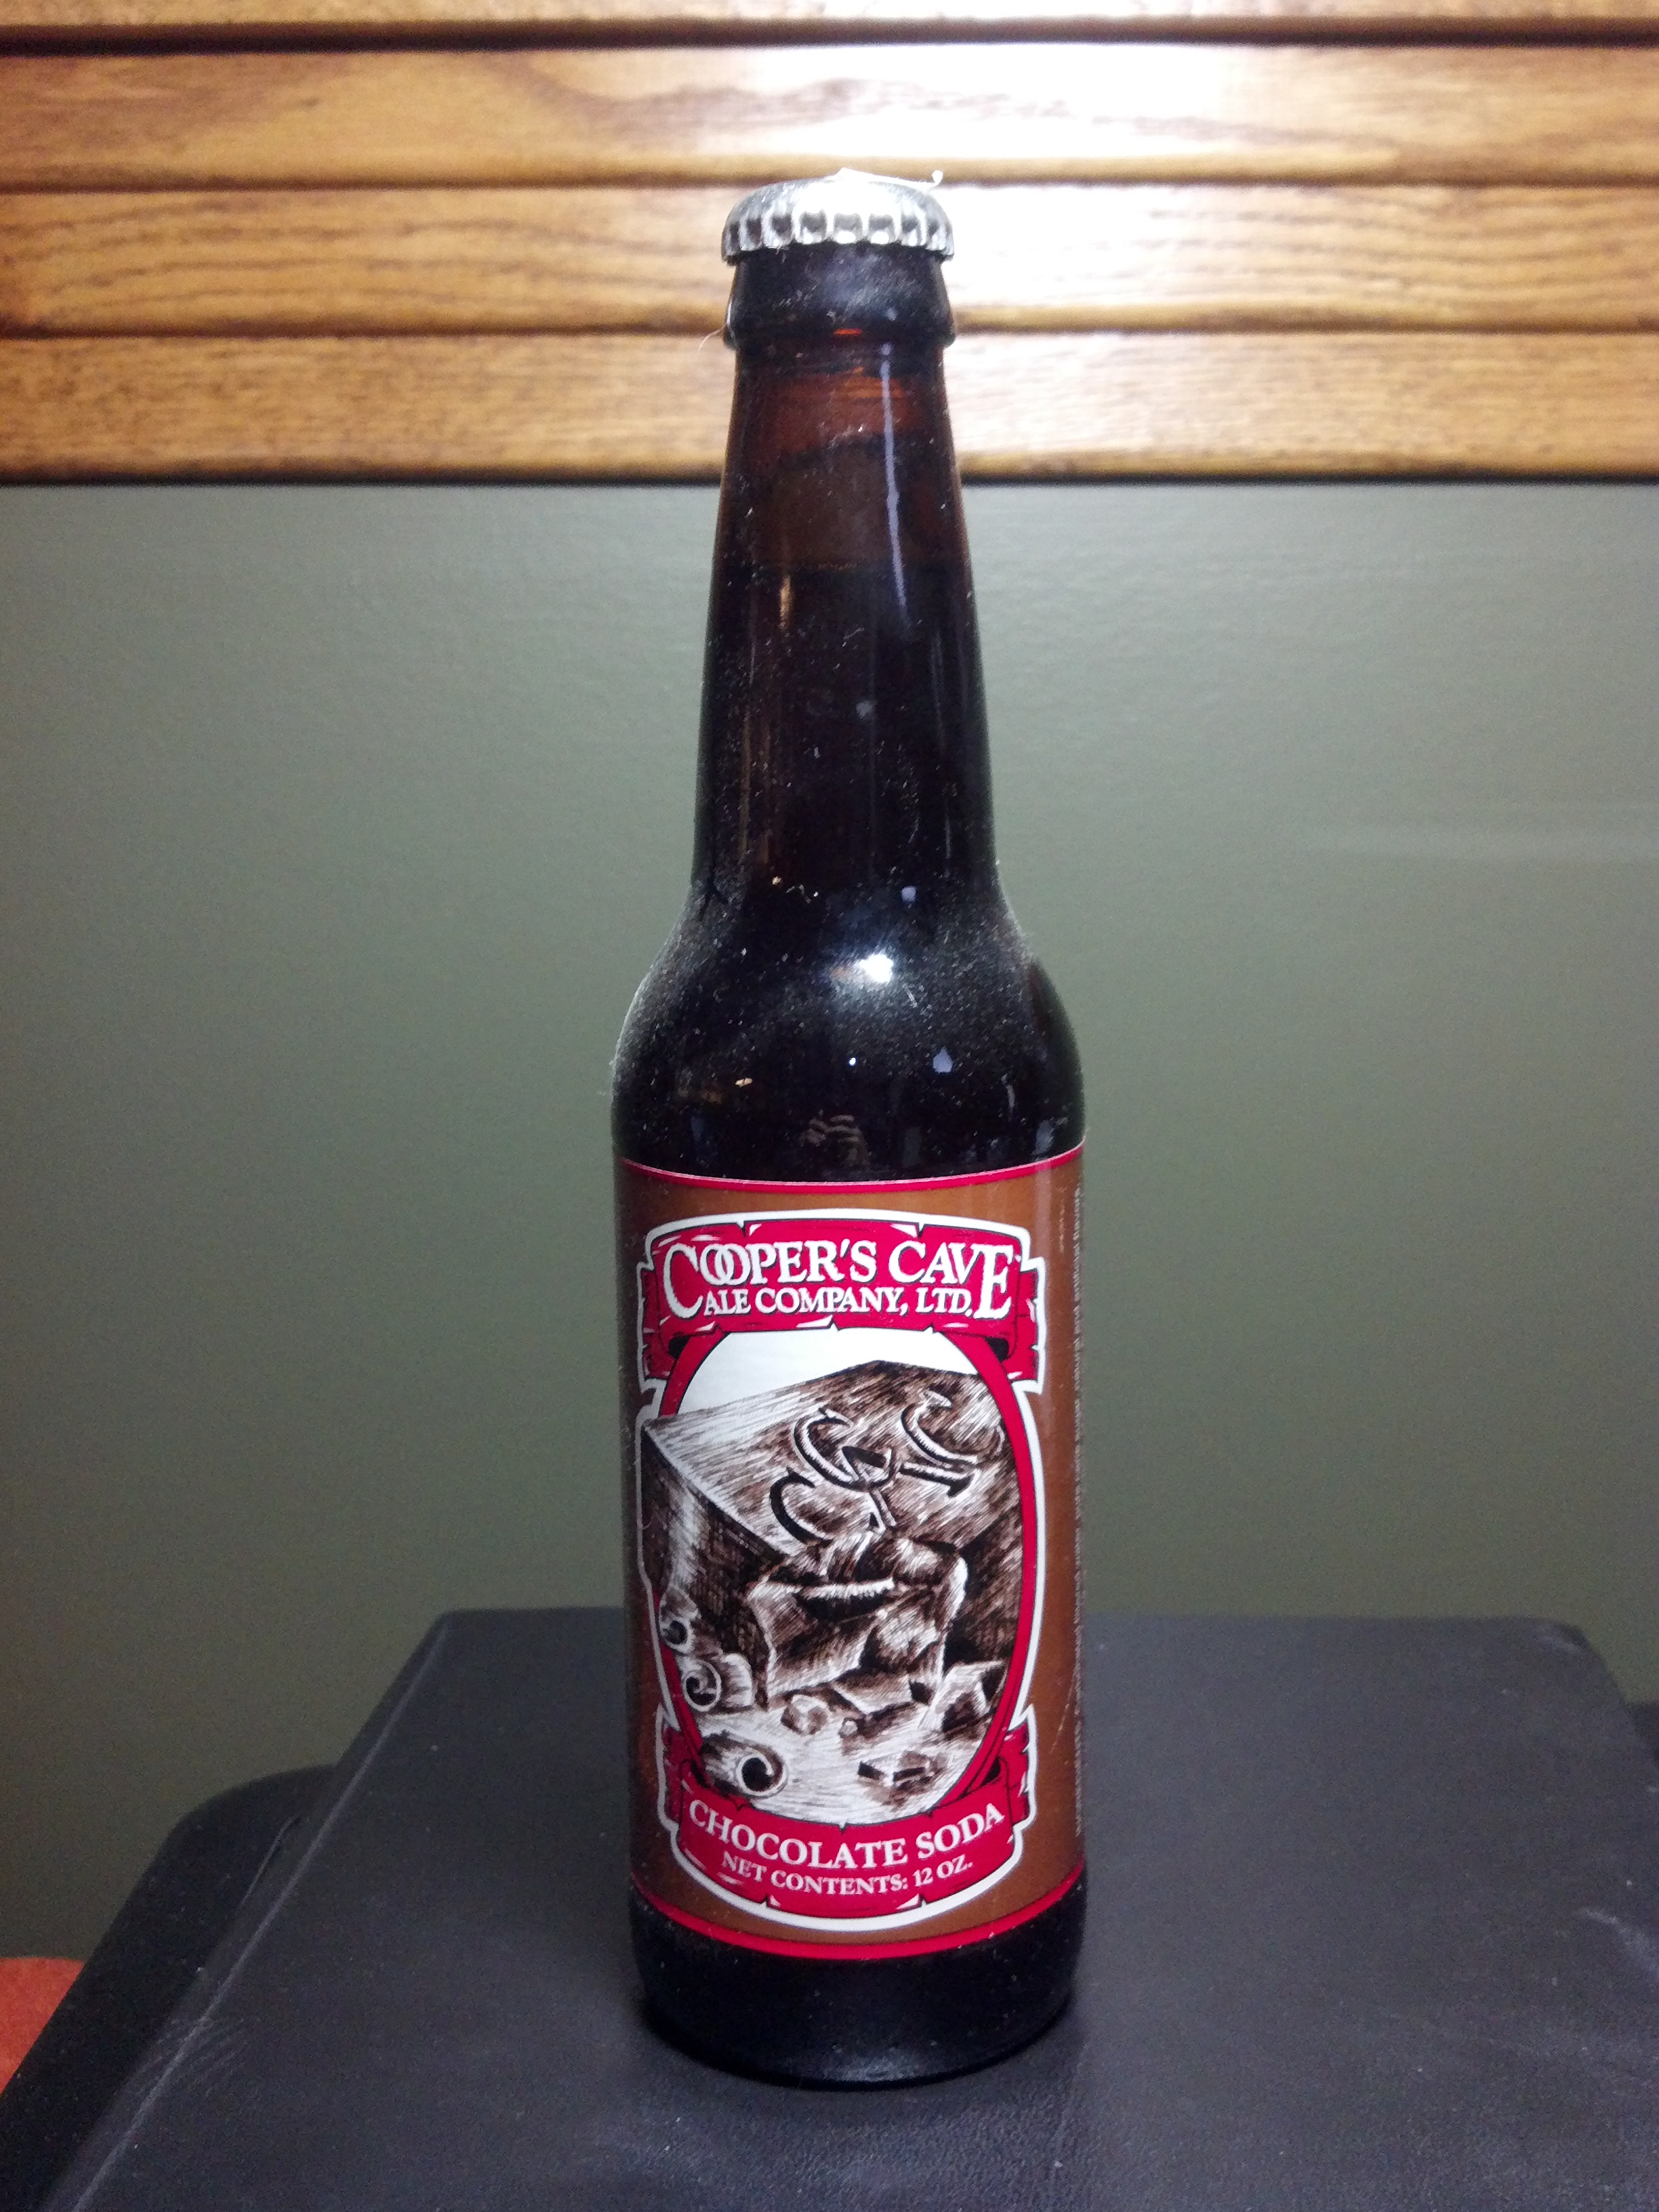 Thirsty Dudes :: Cooper's Cave Ale Company Chocolate Soda